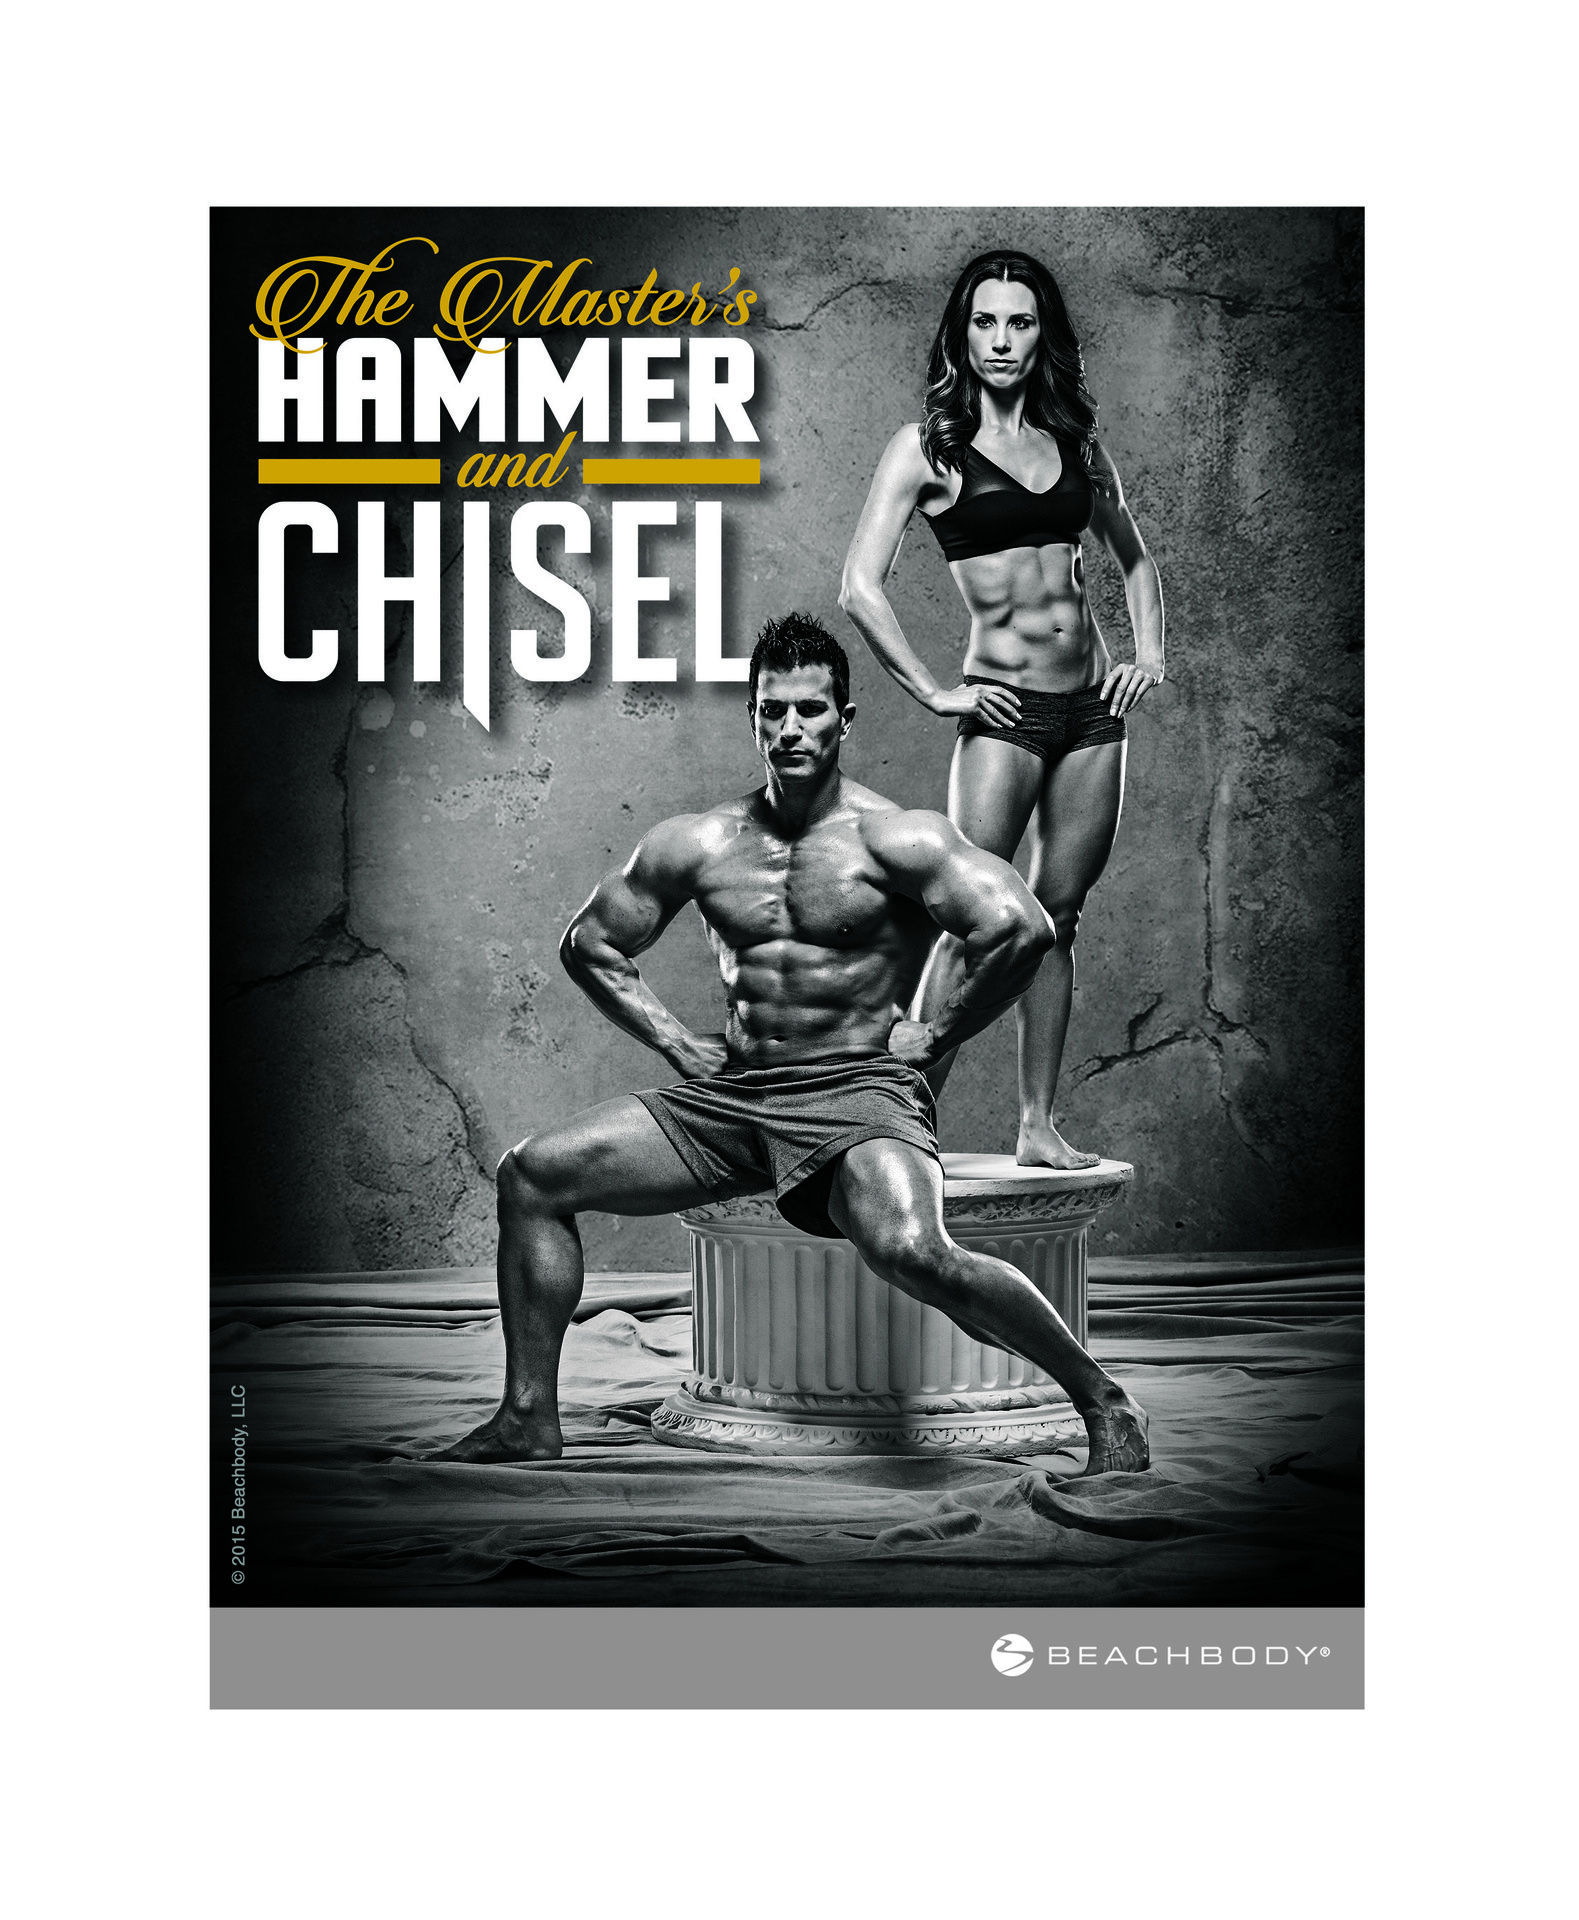 Alex_Ardenti_Sagi_Kalev_Autumn_Calabrese_hammer_and_chisel_beachbody_dvd_3